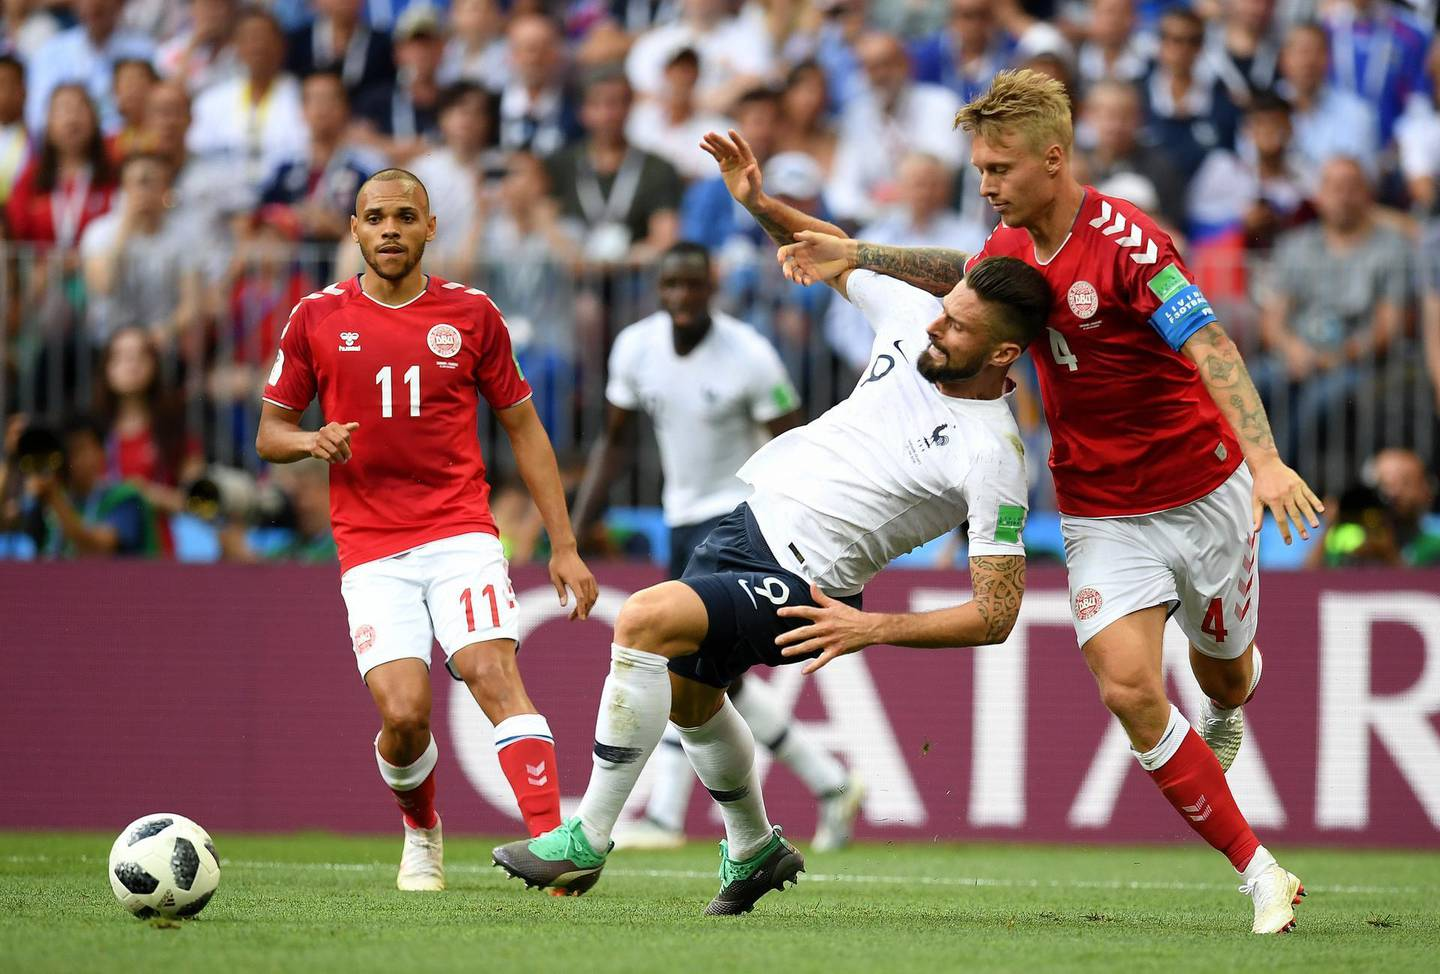 MOSCOW, RUSSIA - JUNE 26:  Olivier Giroud of France is tackled by Simon Kjaer of Denmark during the 2018 FIFA World Cup Russia group C match between Denmark and France at Luzhniki Stadium on June 26, 2018 in Moscow, Russia.  (Photo by Matthias Hangst/Getty Images)